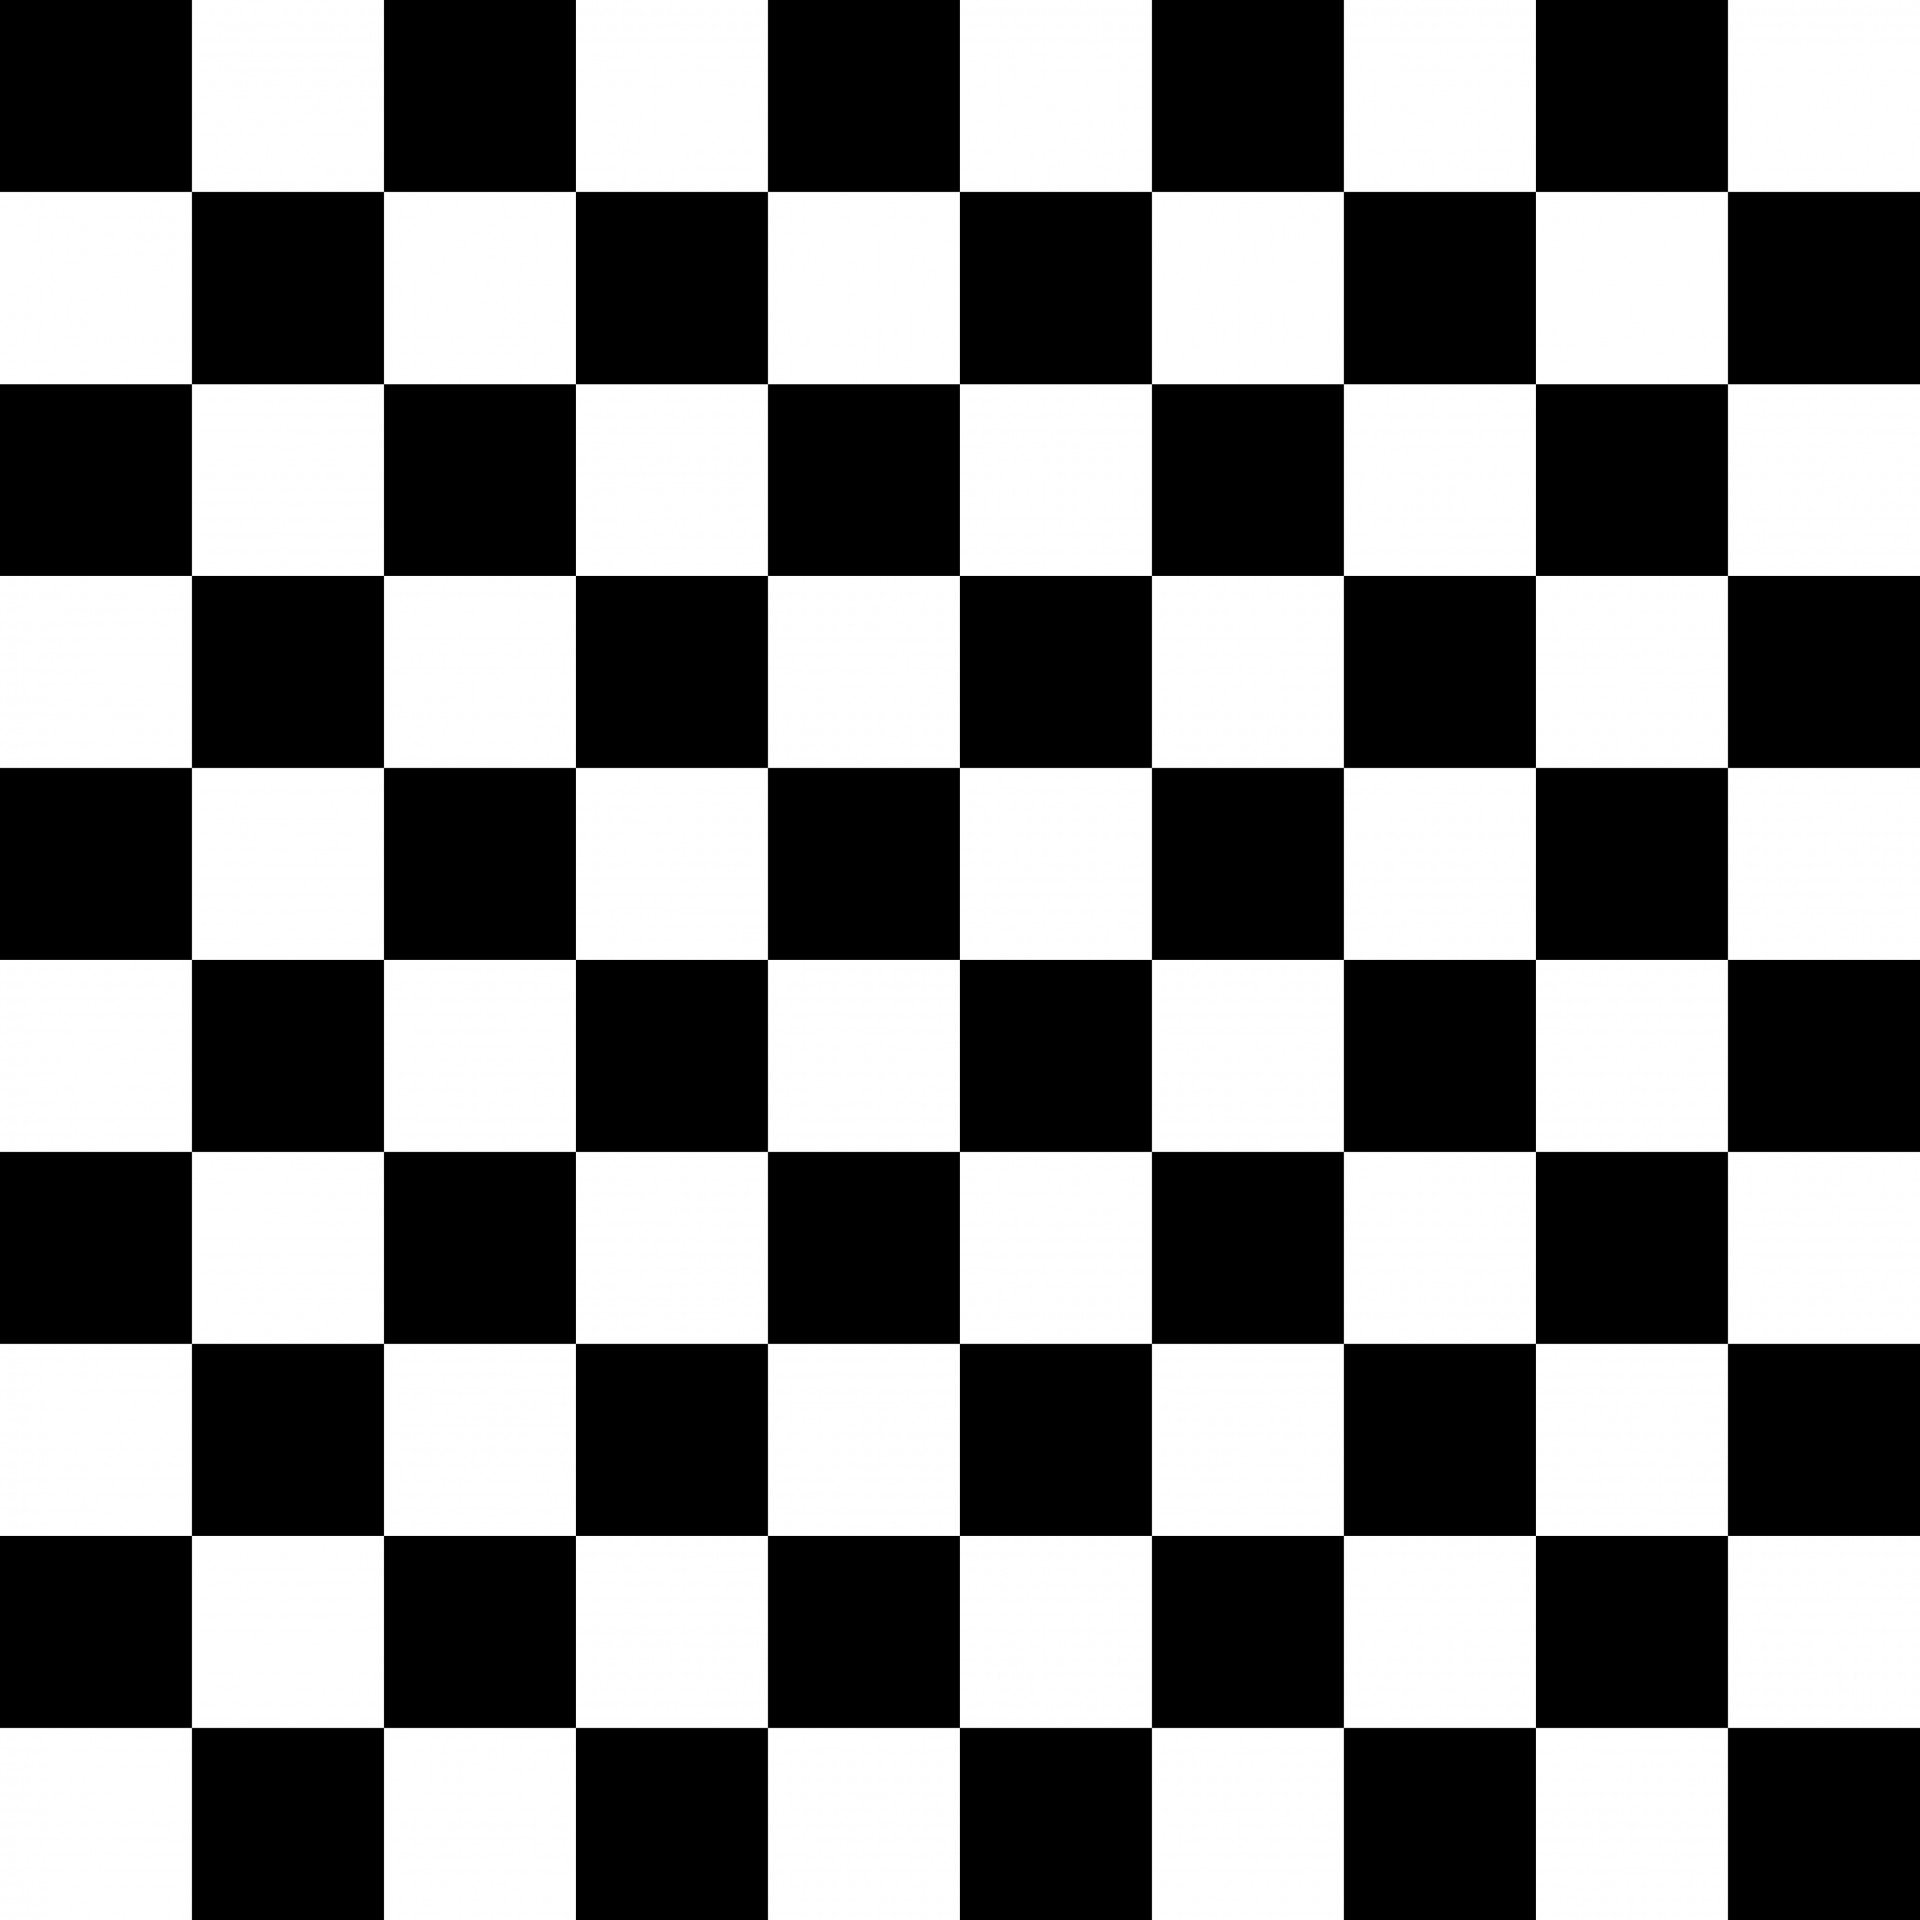 checkerboard-squares-black-white.jpg